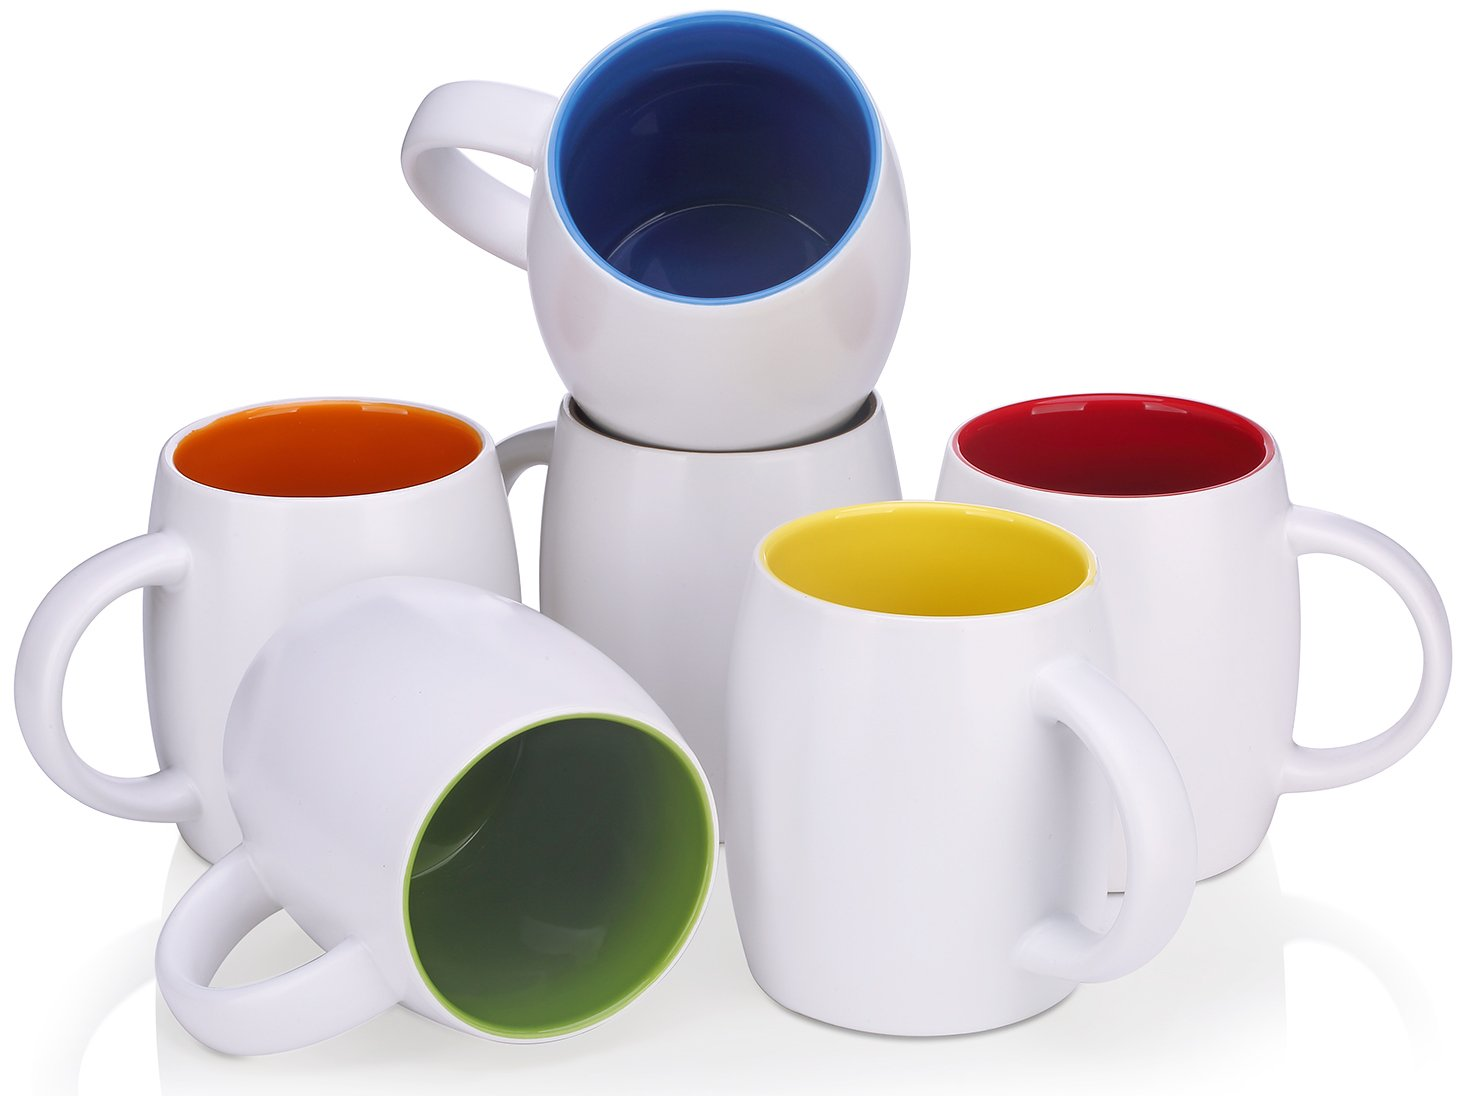 DOWAN 14 Ounce Mug Sets for Coffee/Tea/Cocoa, 6 Piece White Ceramic Mugs with Multi Inner Colors - Microwave, Dishwasher and refrigerator Safe